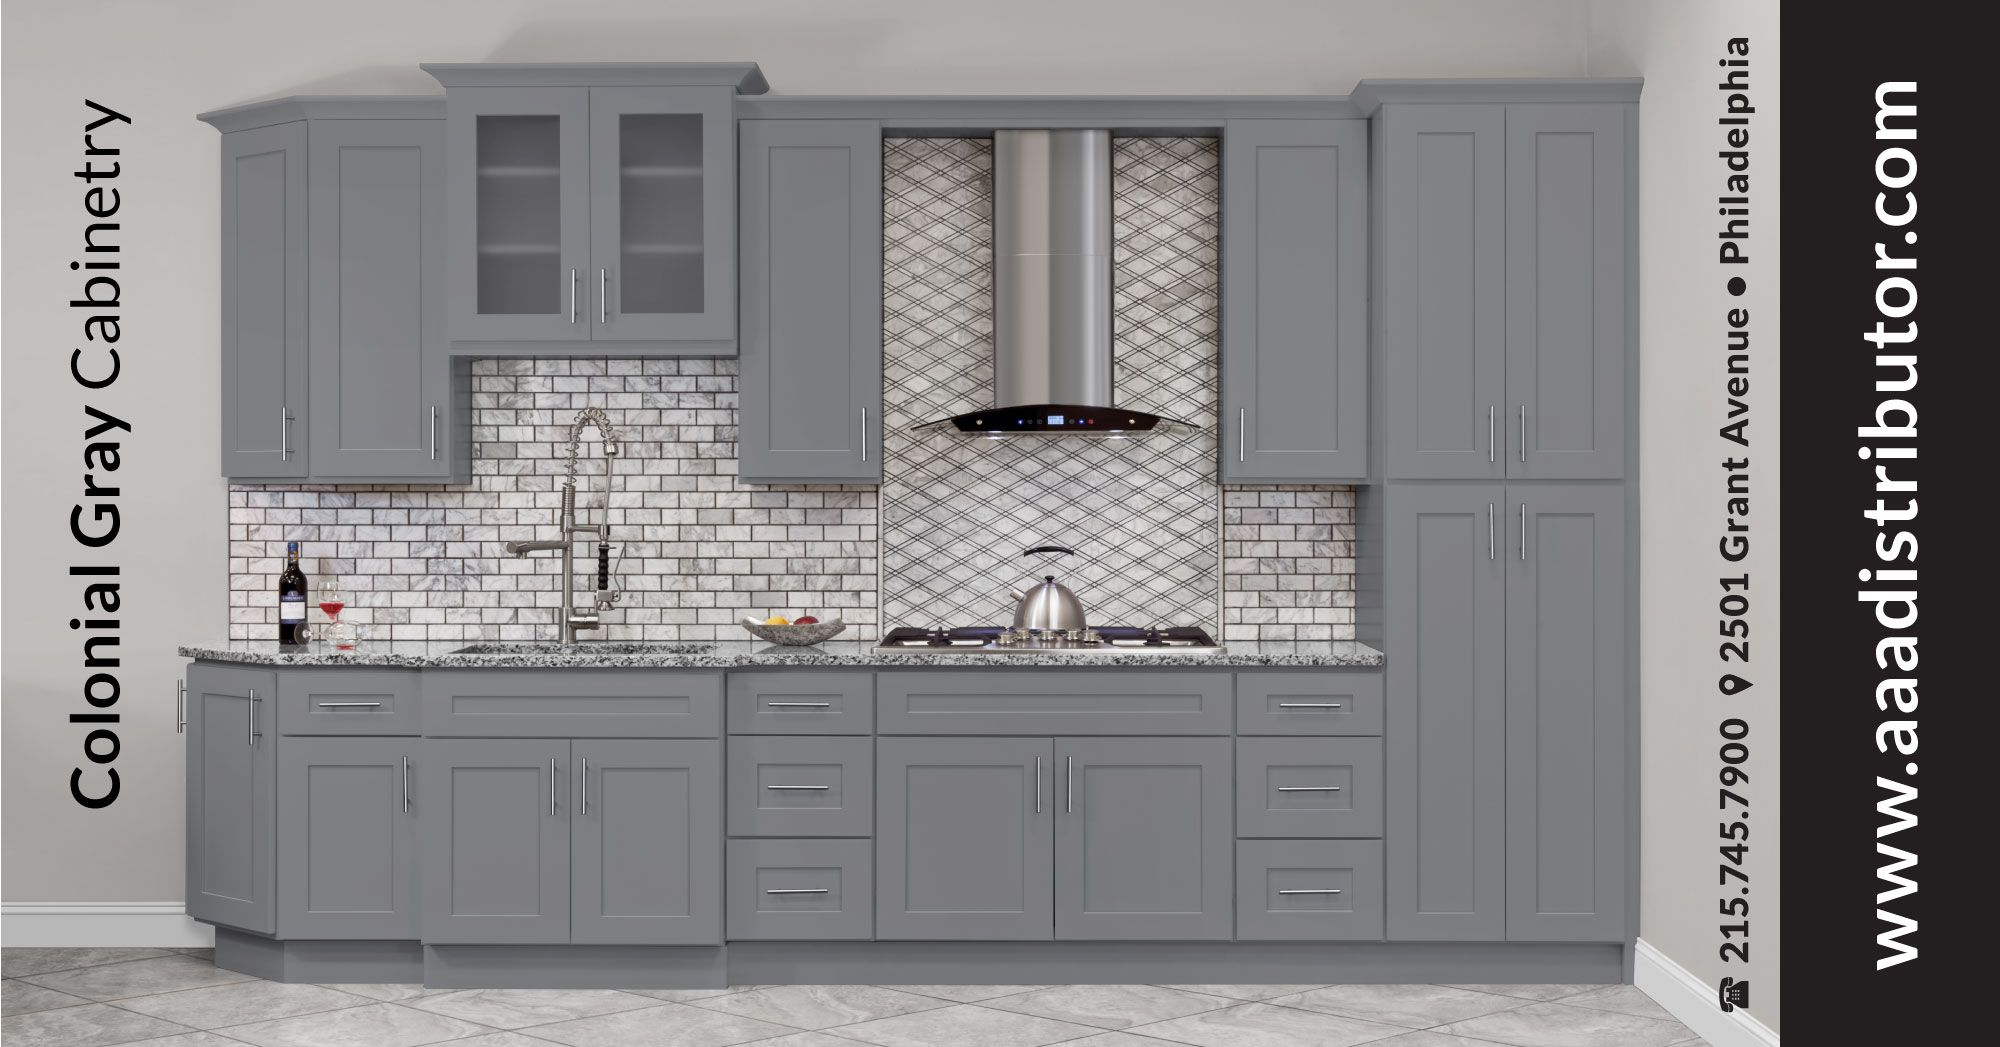 New Collection In Stock Modern Gray Shaker Kitchen Cabinets And Accessories All Wood Frame Construct Wood Frame Construction Kitchen Cabinets Diy Wood Floors